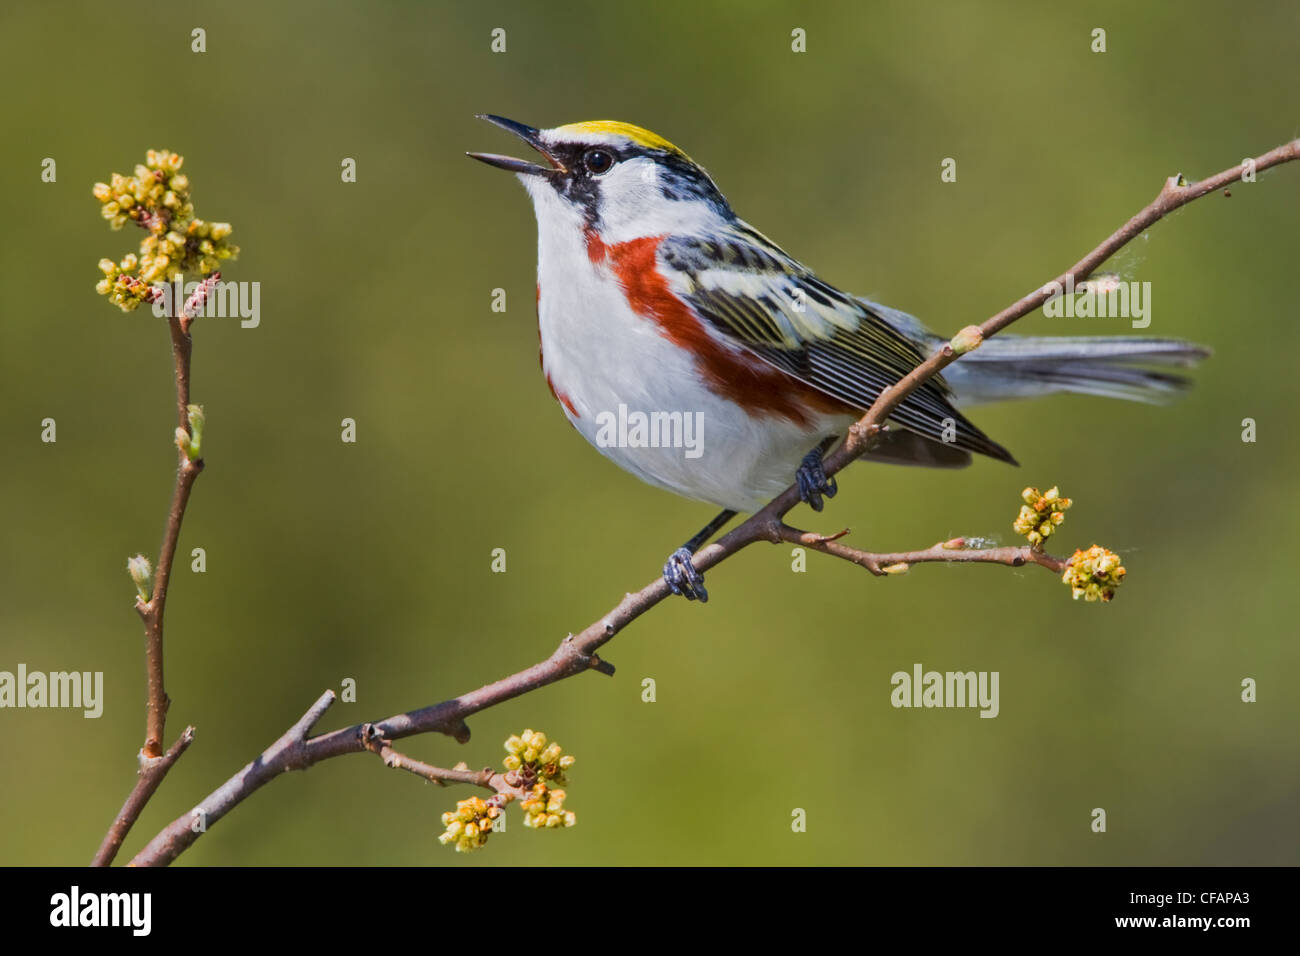 Chestnut-sided warbler (Dendroica pensylvanica) perched on a branch near Long Point, Ontario, Canada - Stock Image